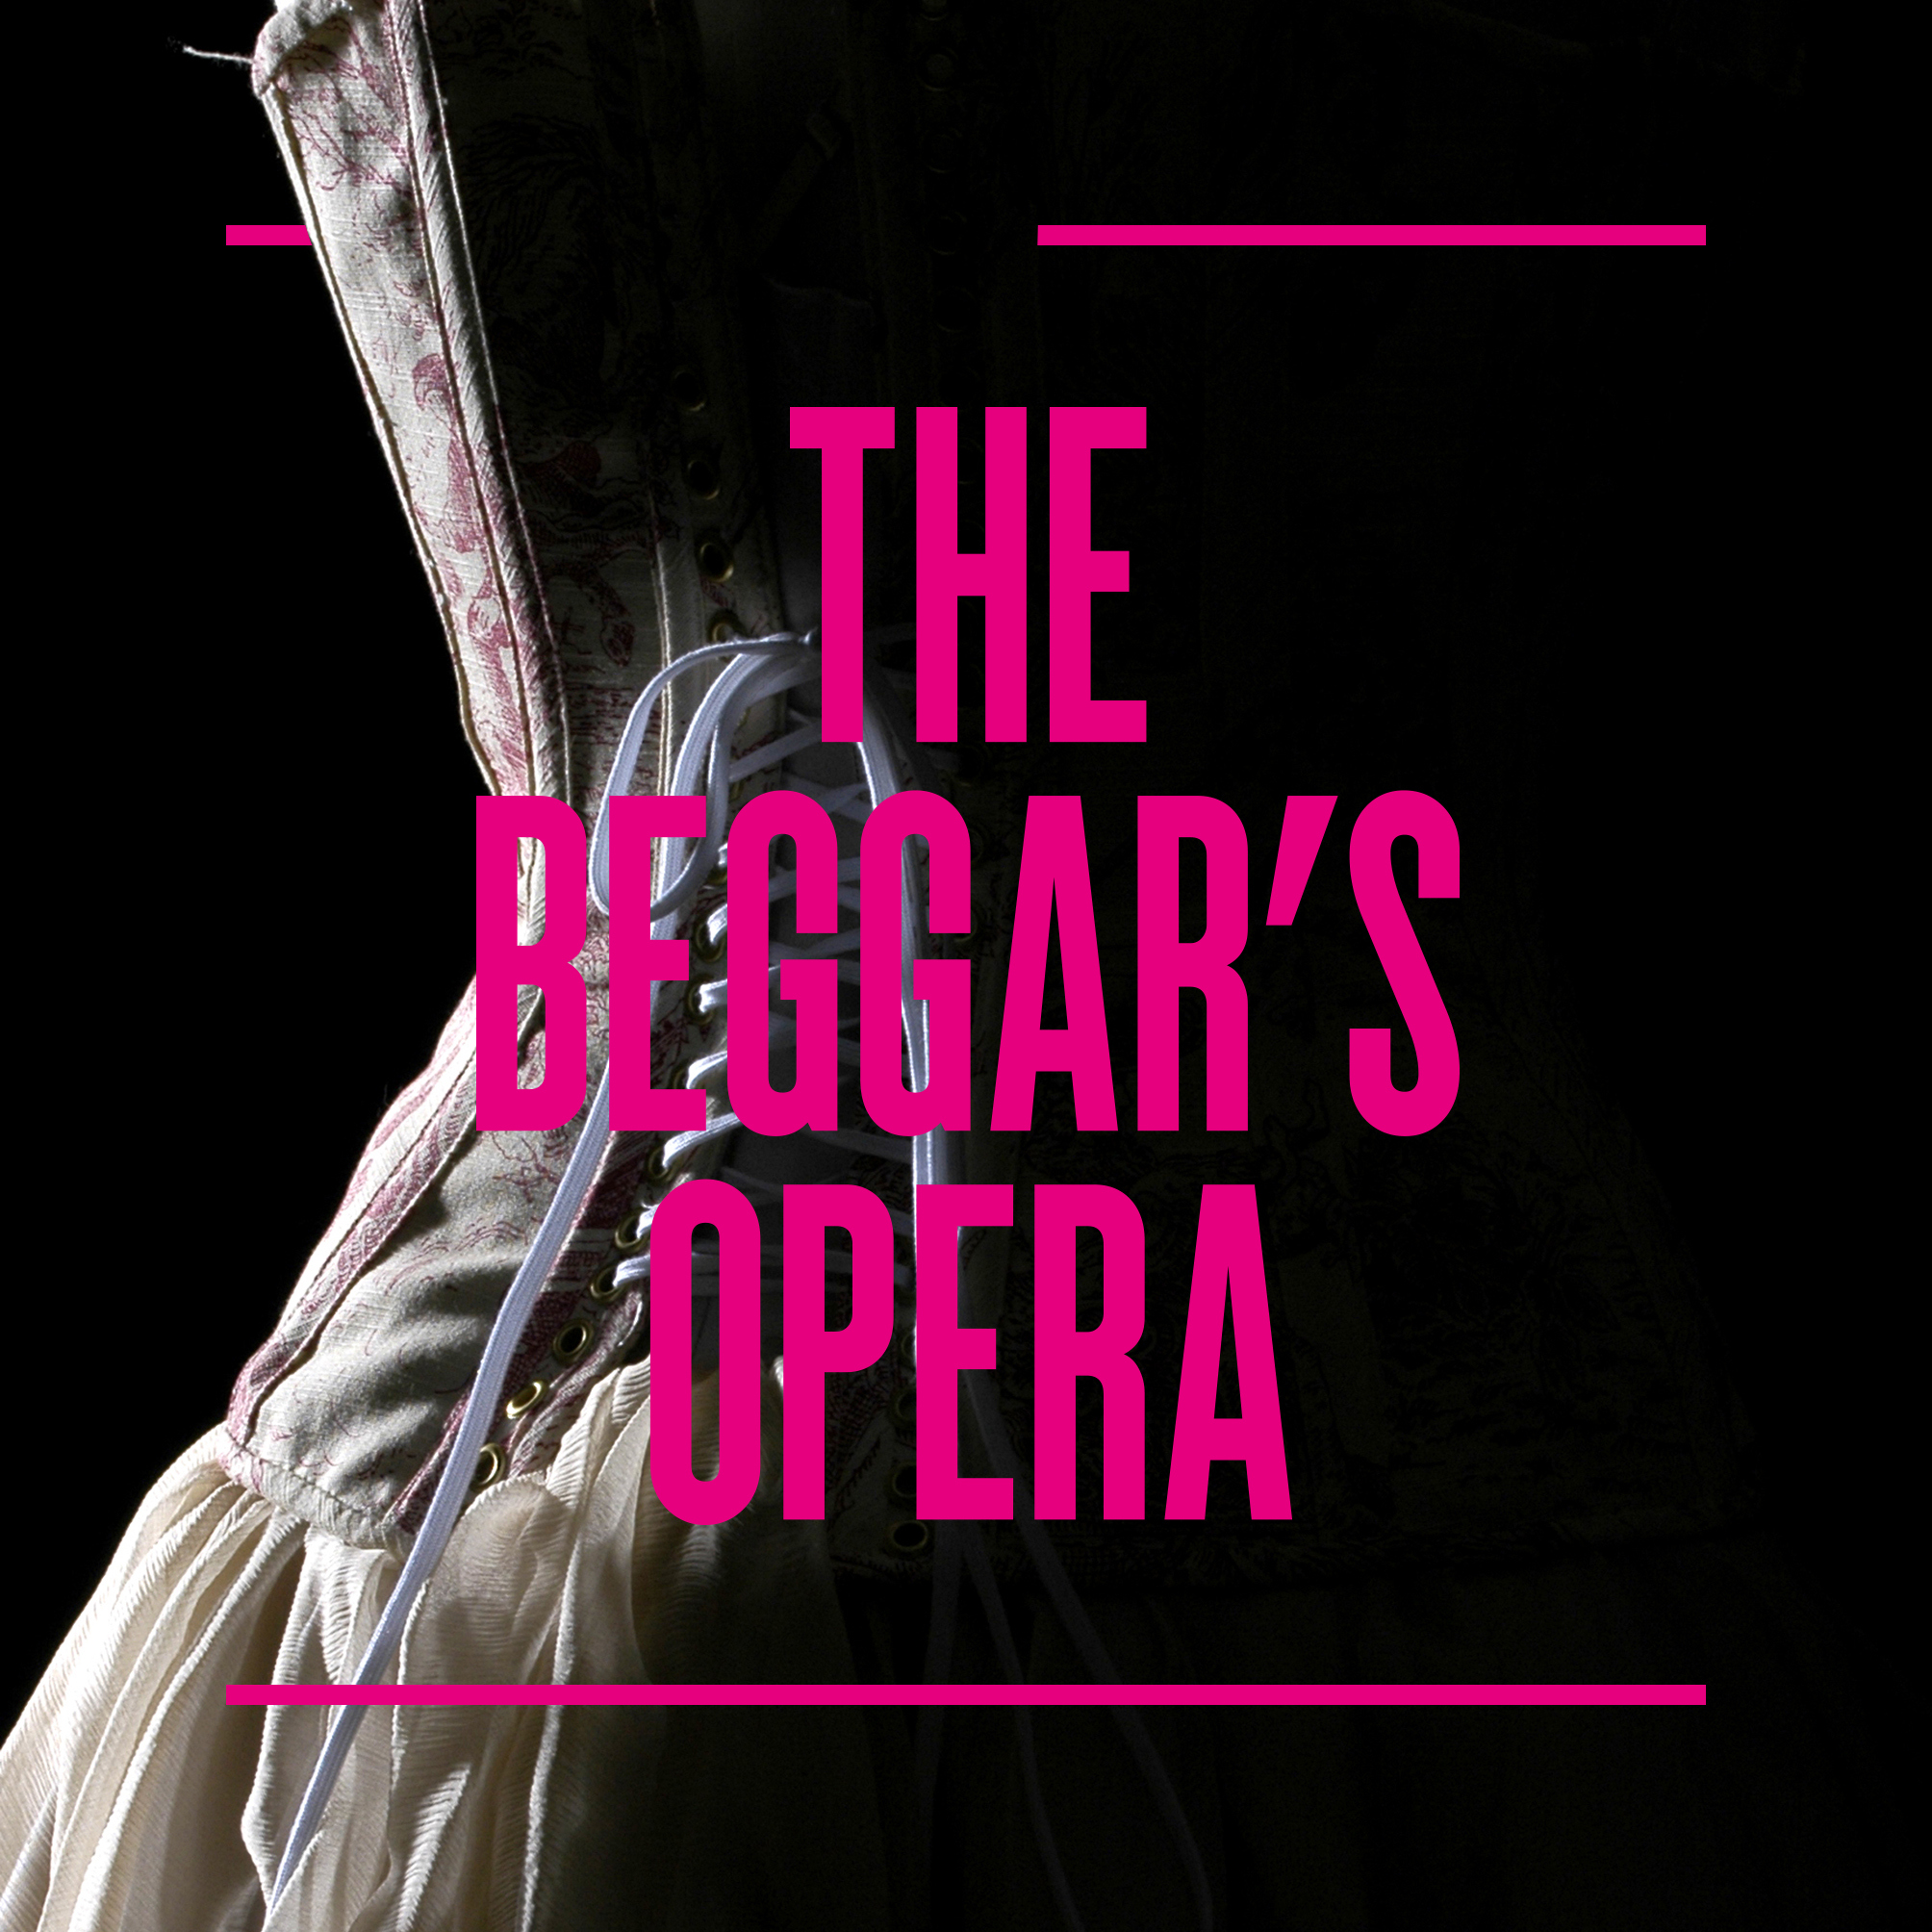 beggars opera Supersummary, a modern alternative to sparknotes and cliffsnotes, offers high-quality study guides that feature detailed chapter summaries and analysis of major themes, characters, quotes.